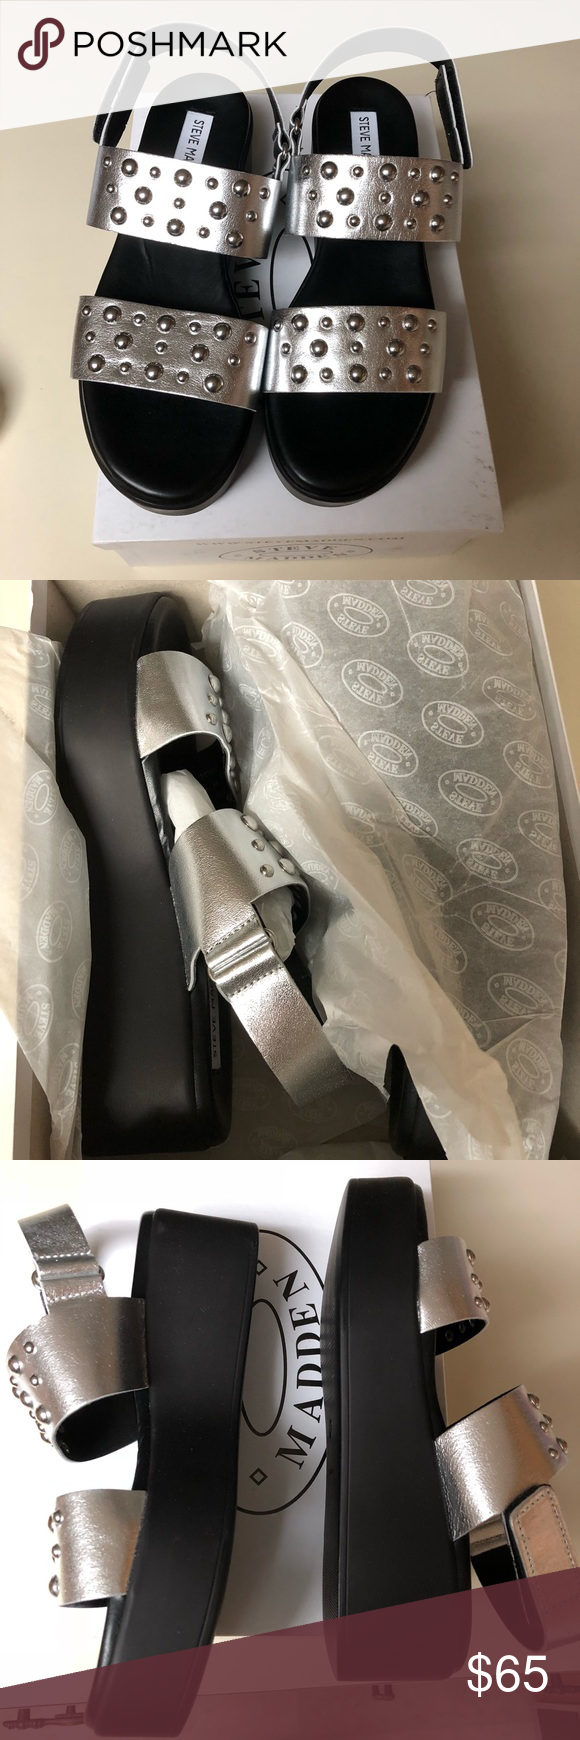 90ebc0fc6f5 NWT Steve madden 7 silver leather platforms NWT Steve madden radiate size 7  silver leather platform sandals. Details Sizing  True to…